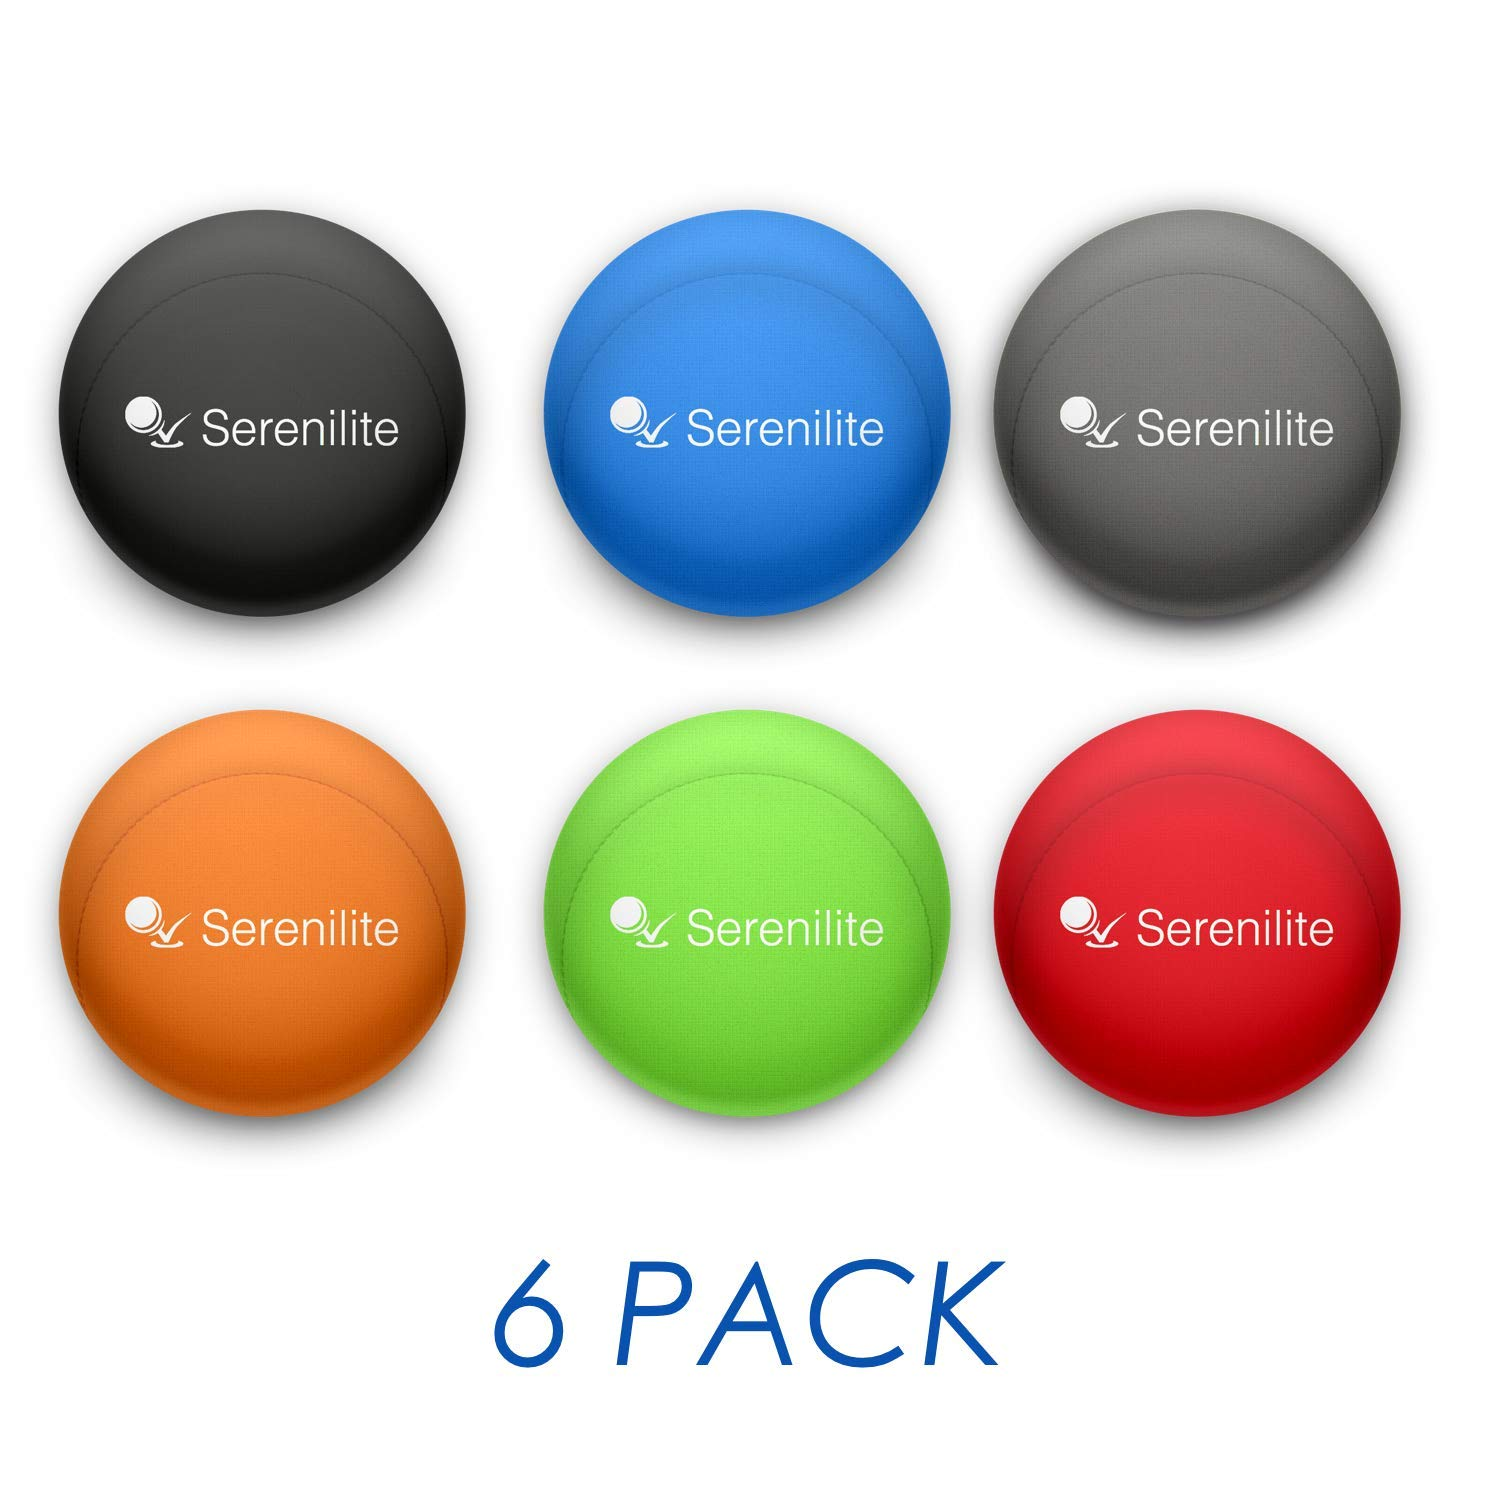 Serenilite Hand Therapy Stress Ball - Optimal Stress Relief - Great for Hand Exercises and Strengthening (6 Ball Bundle) by Serenilite